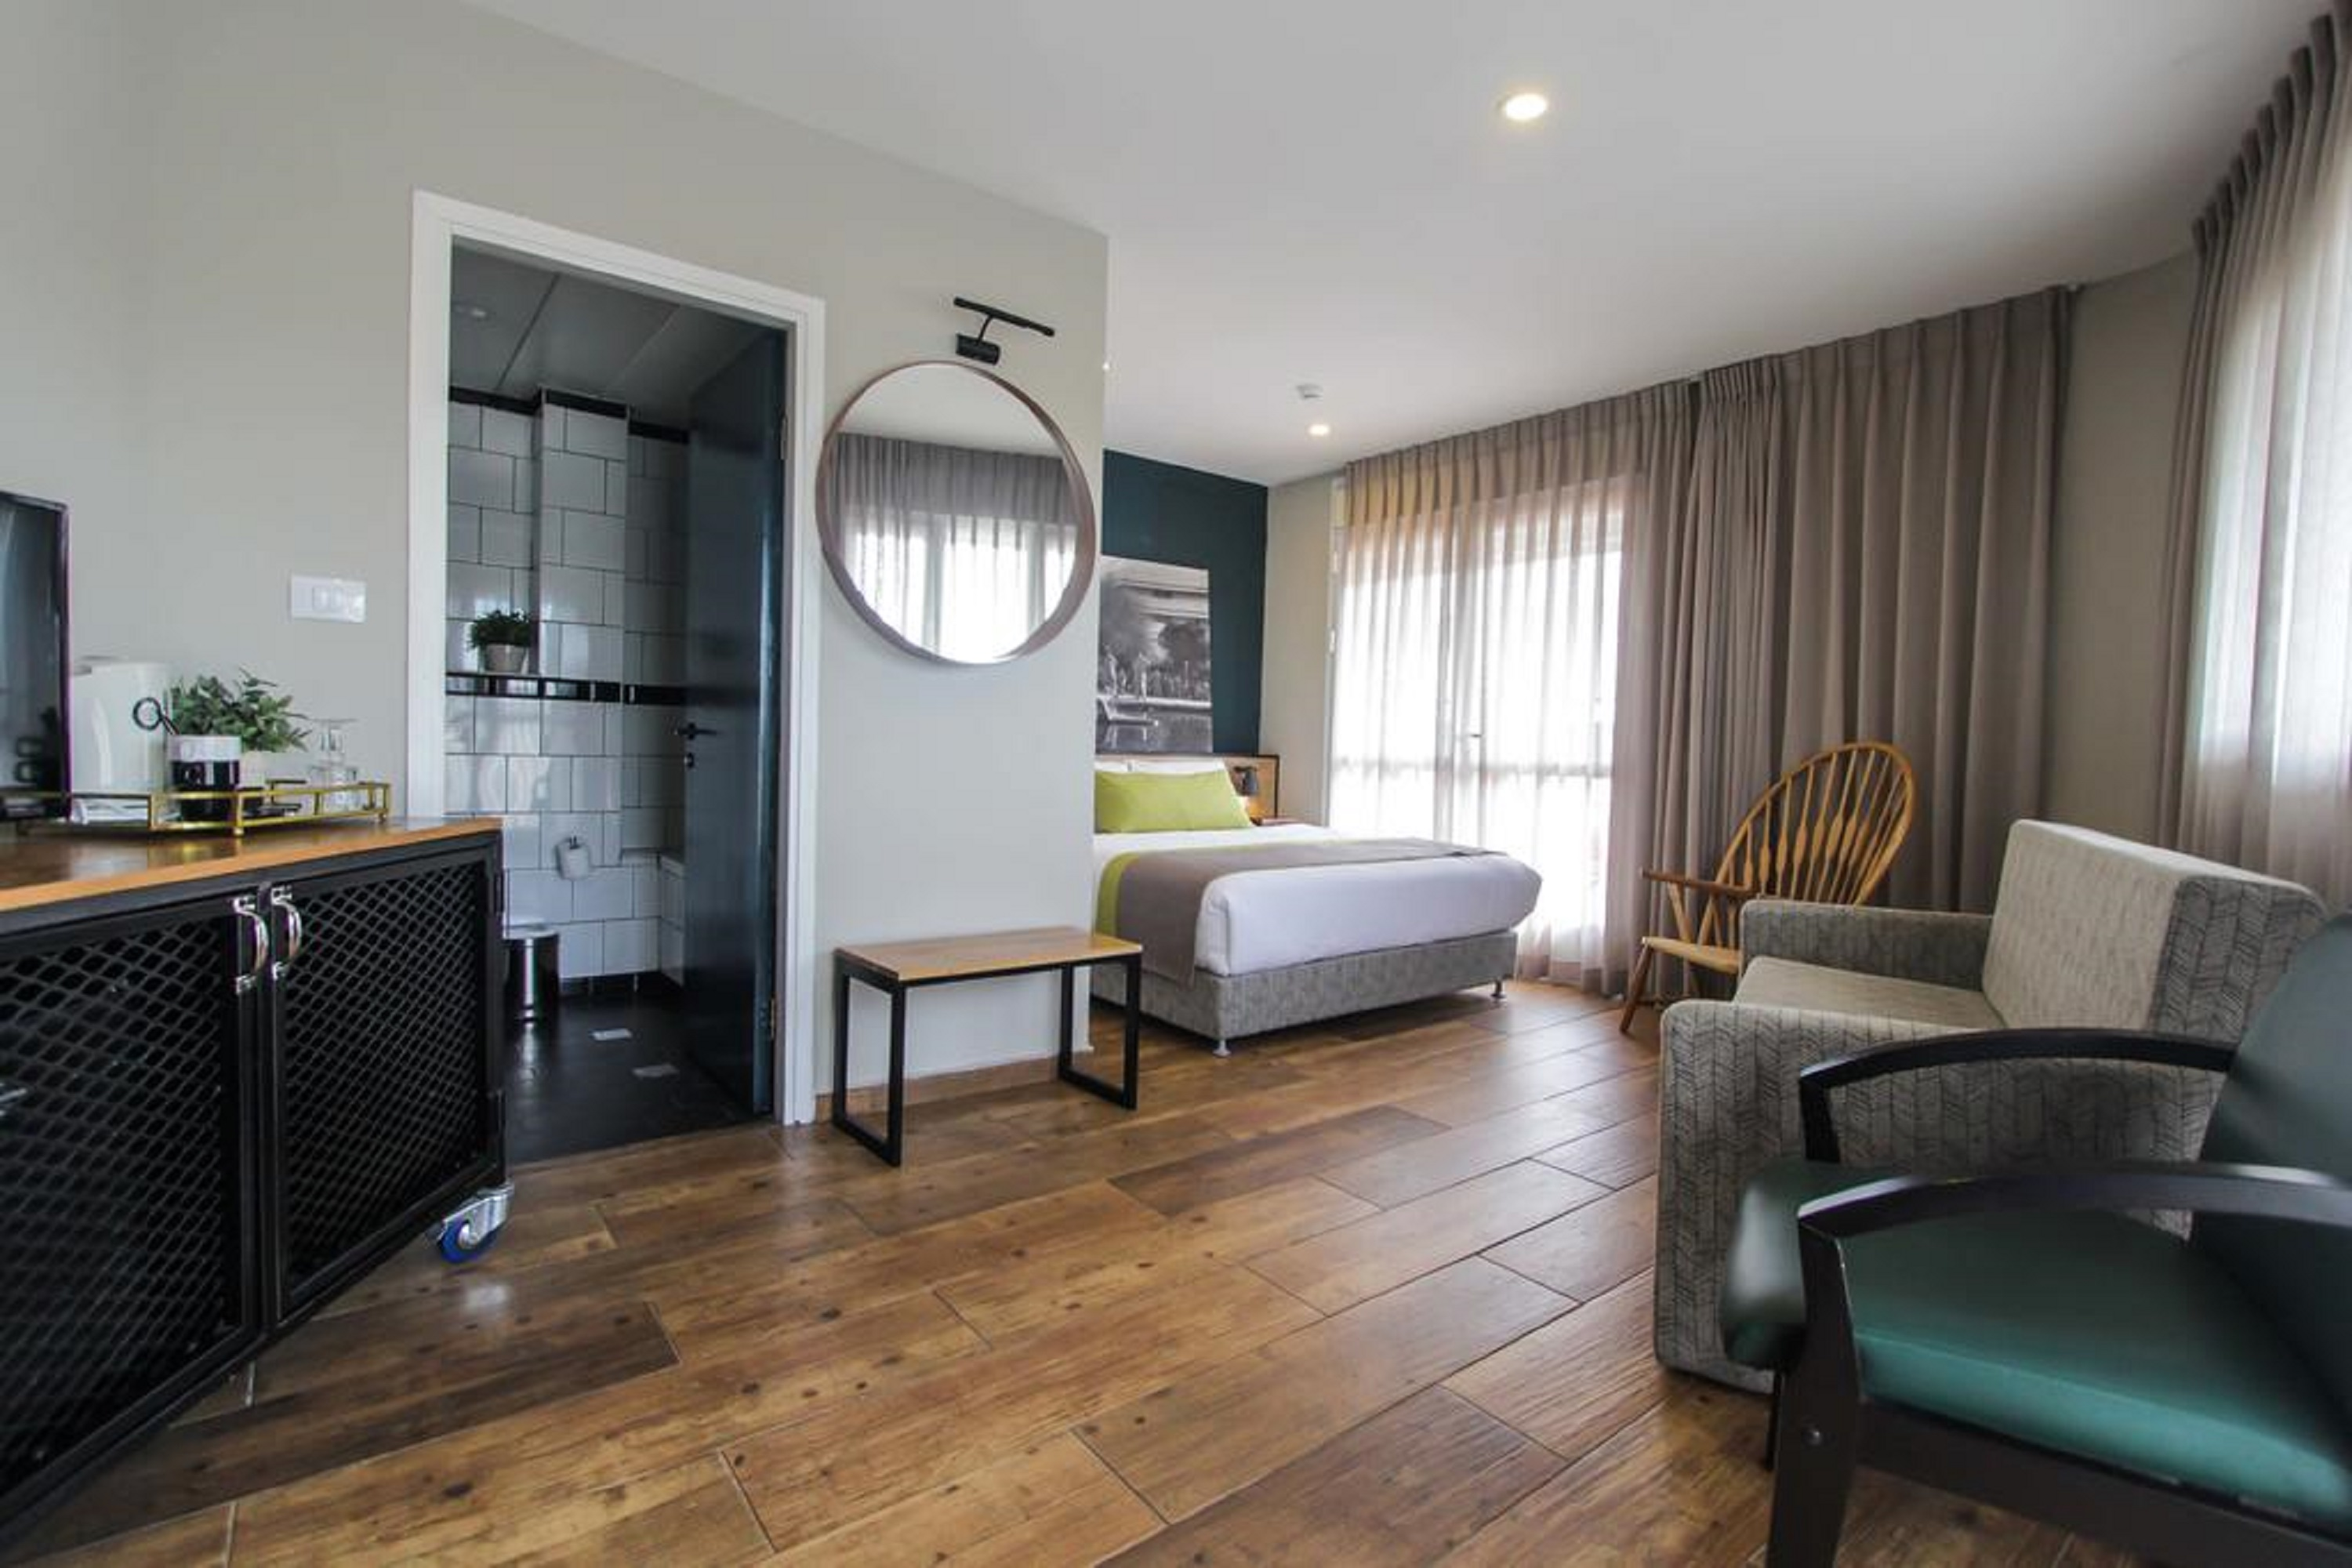 The White House Boutique Hotel